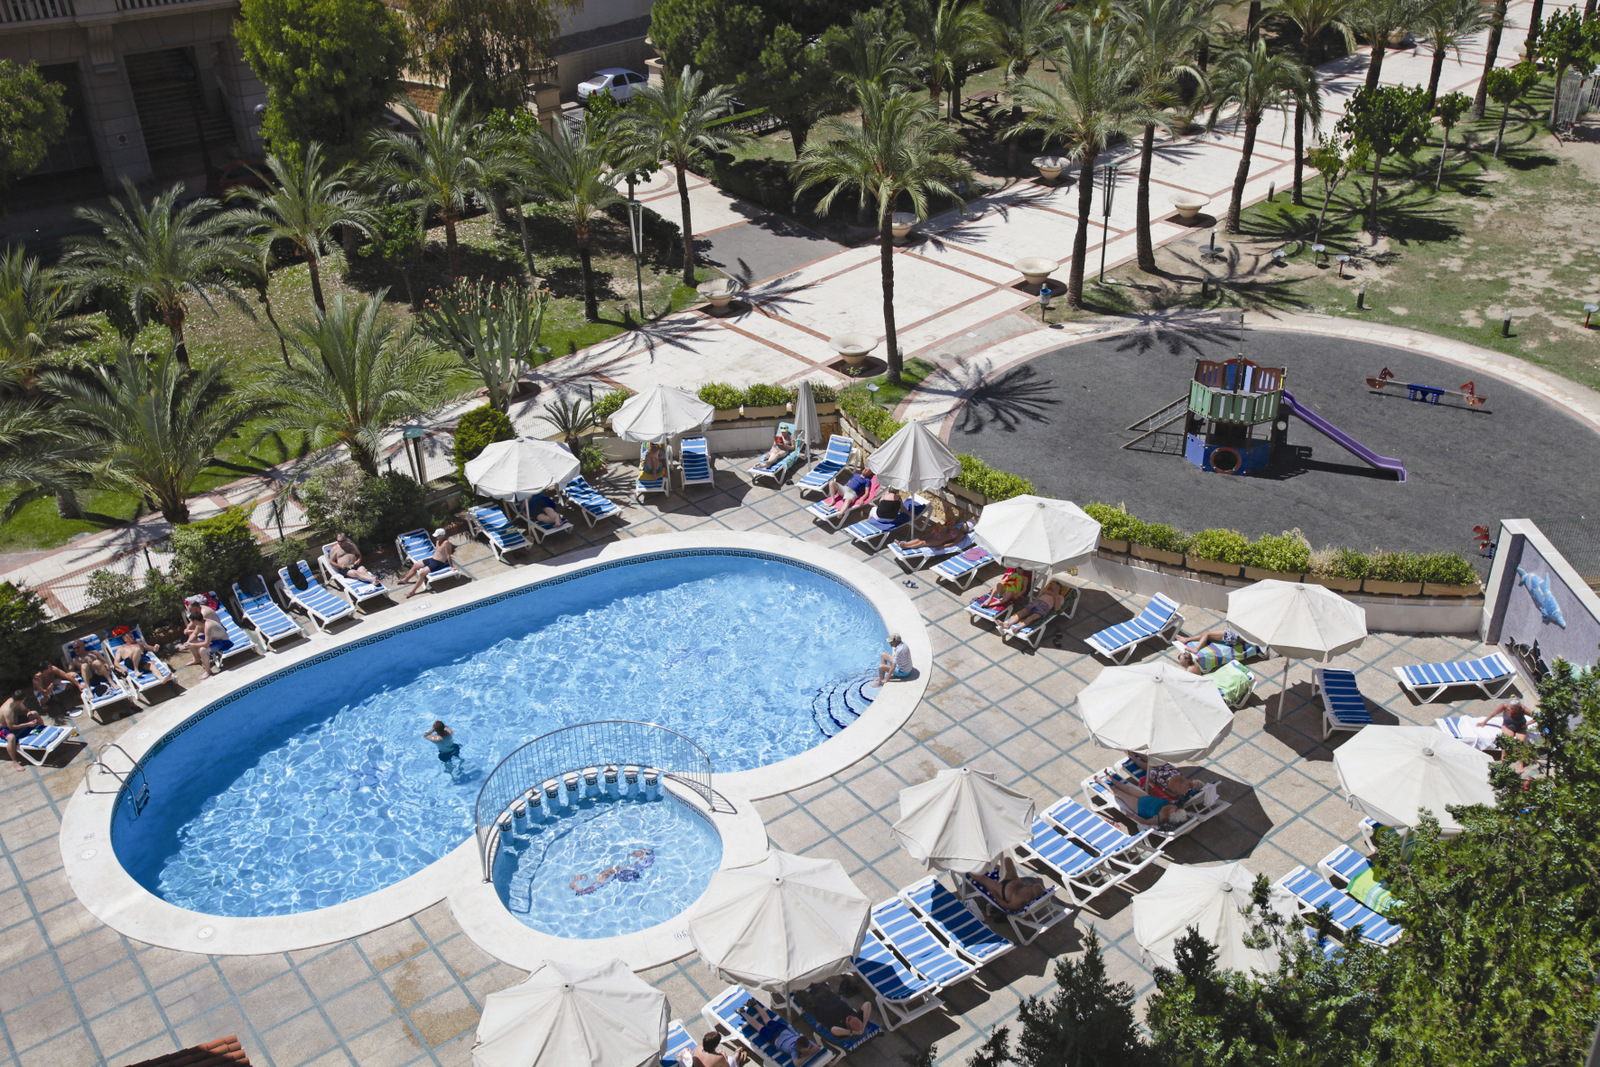 Hoteles playa a thousand hotels - Hotel piscina ninos ...